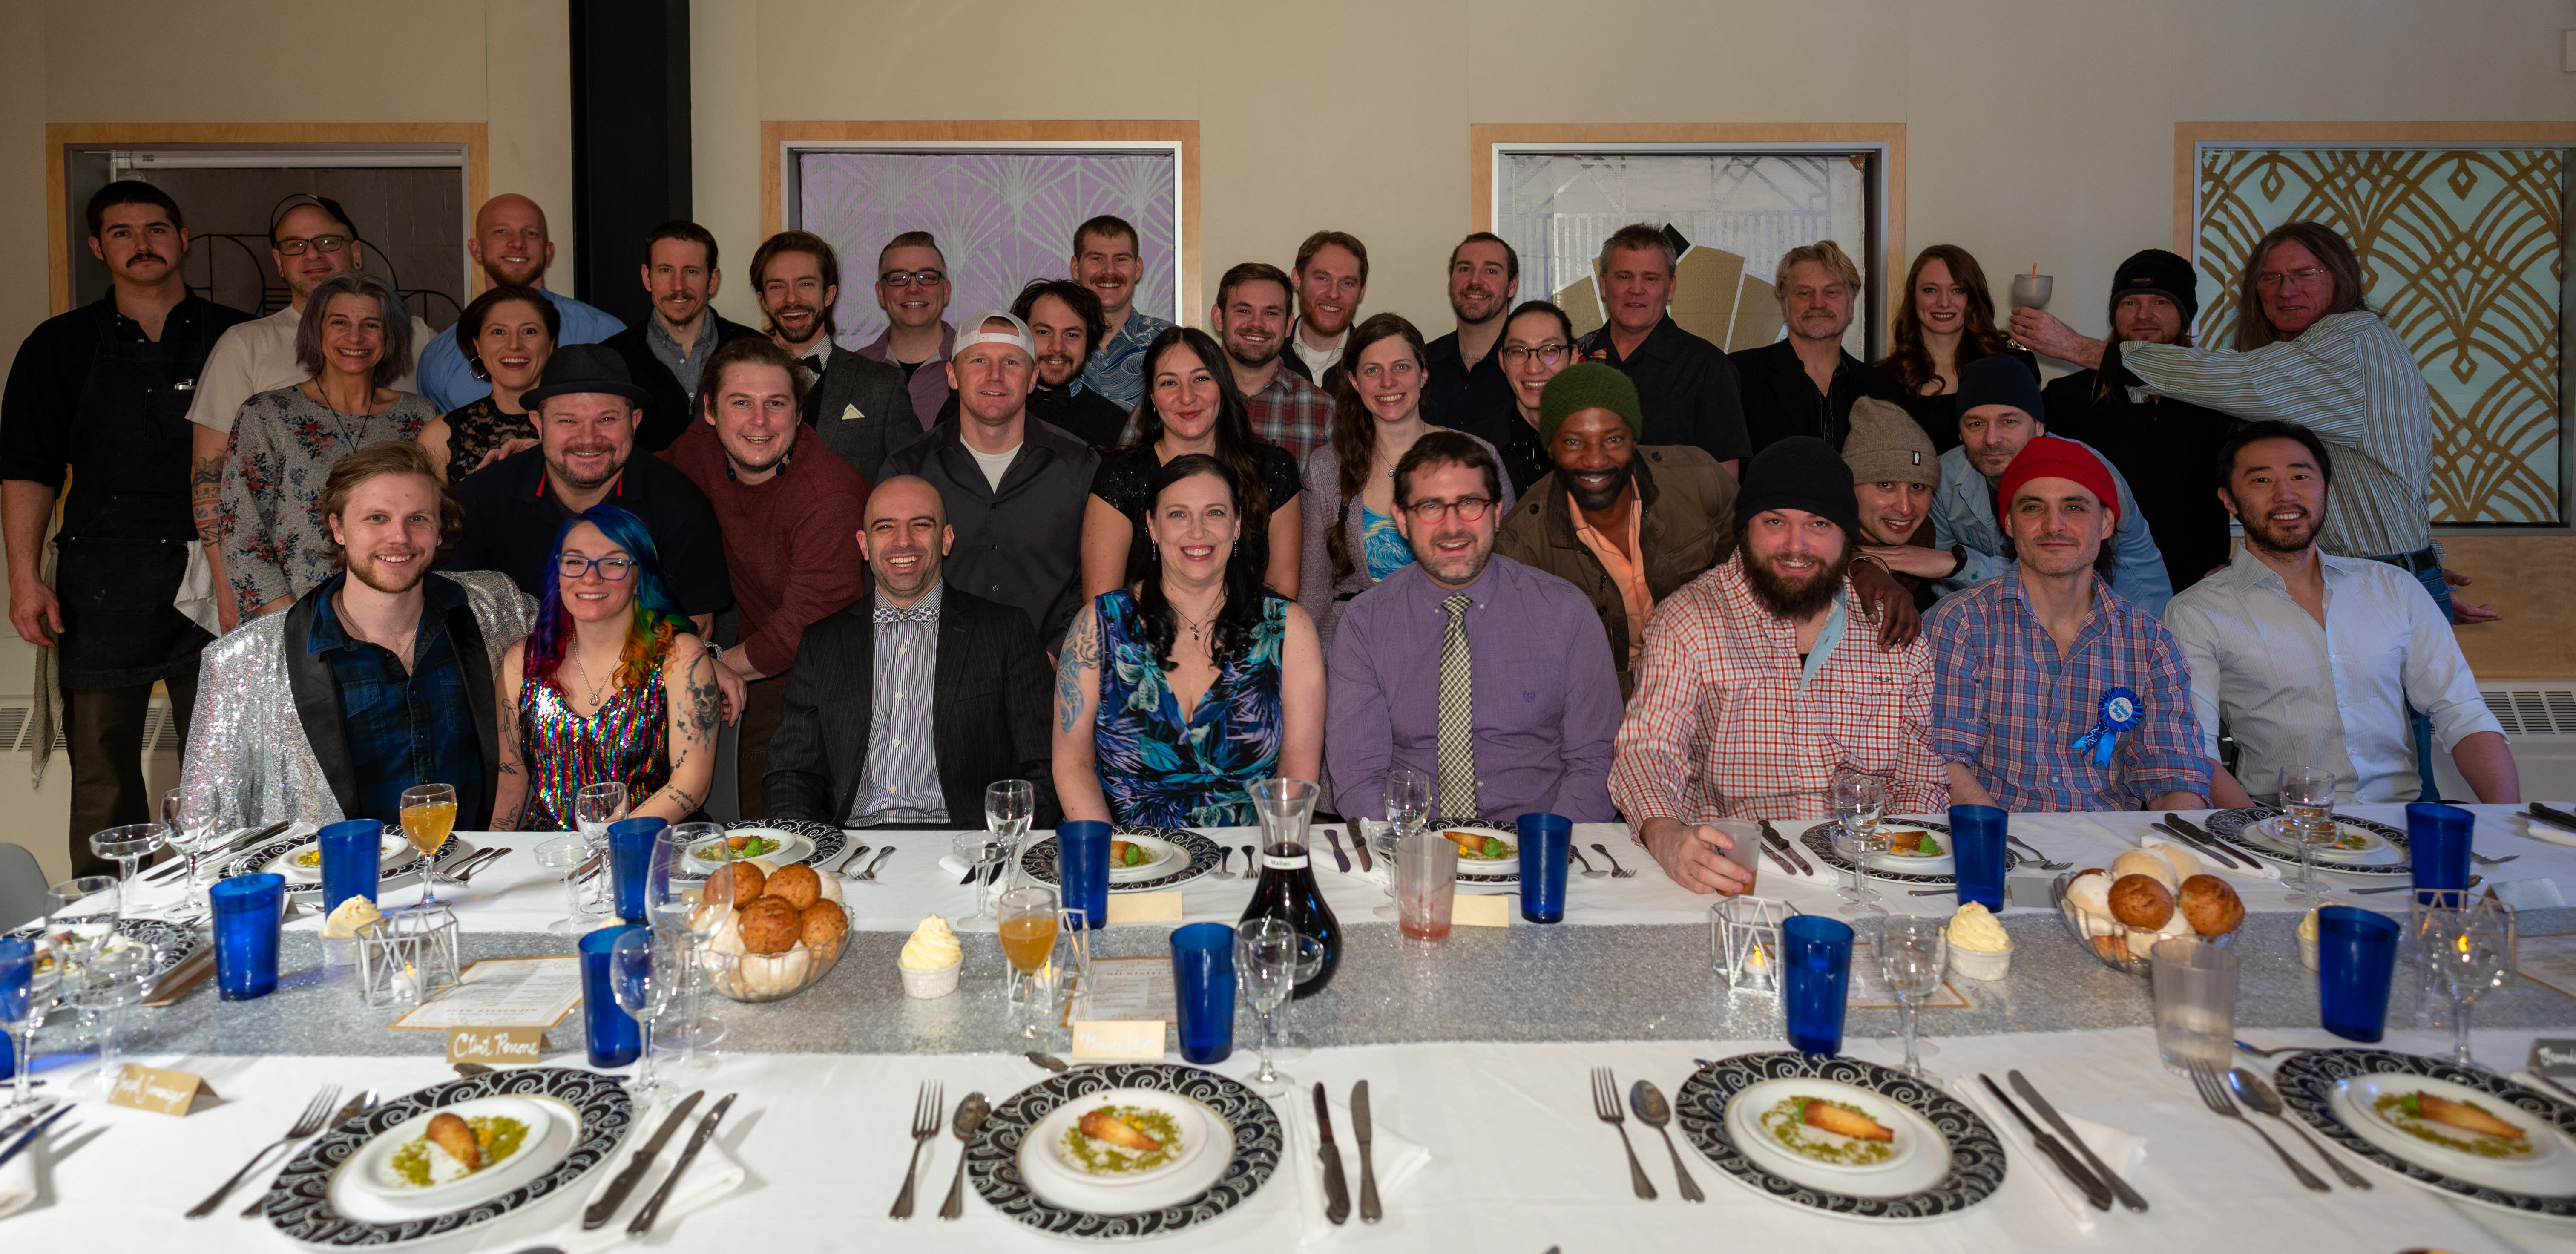 Group photo, seated at long table for midwinter meal.